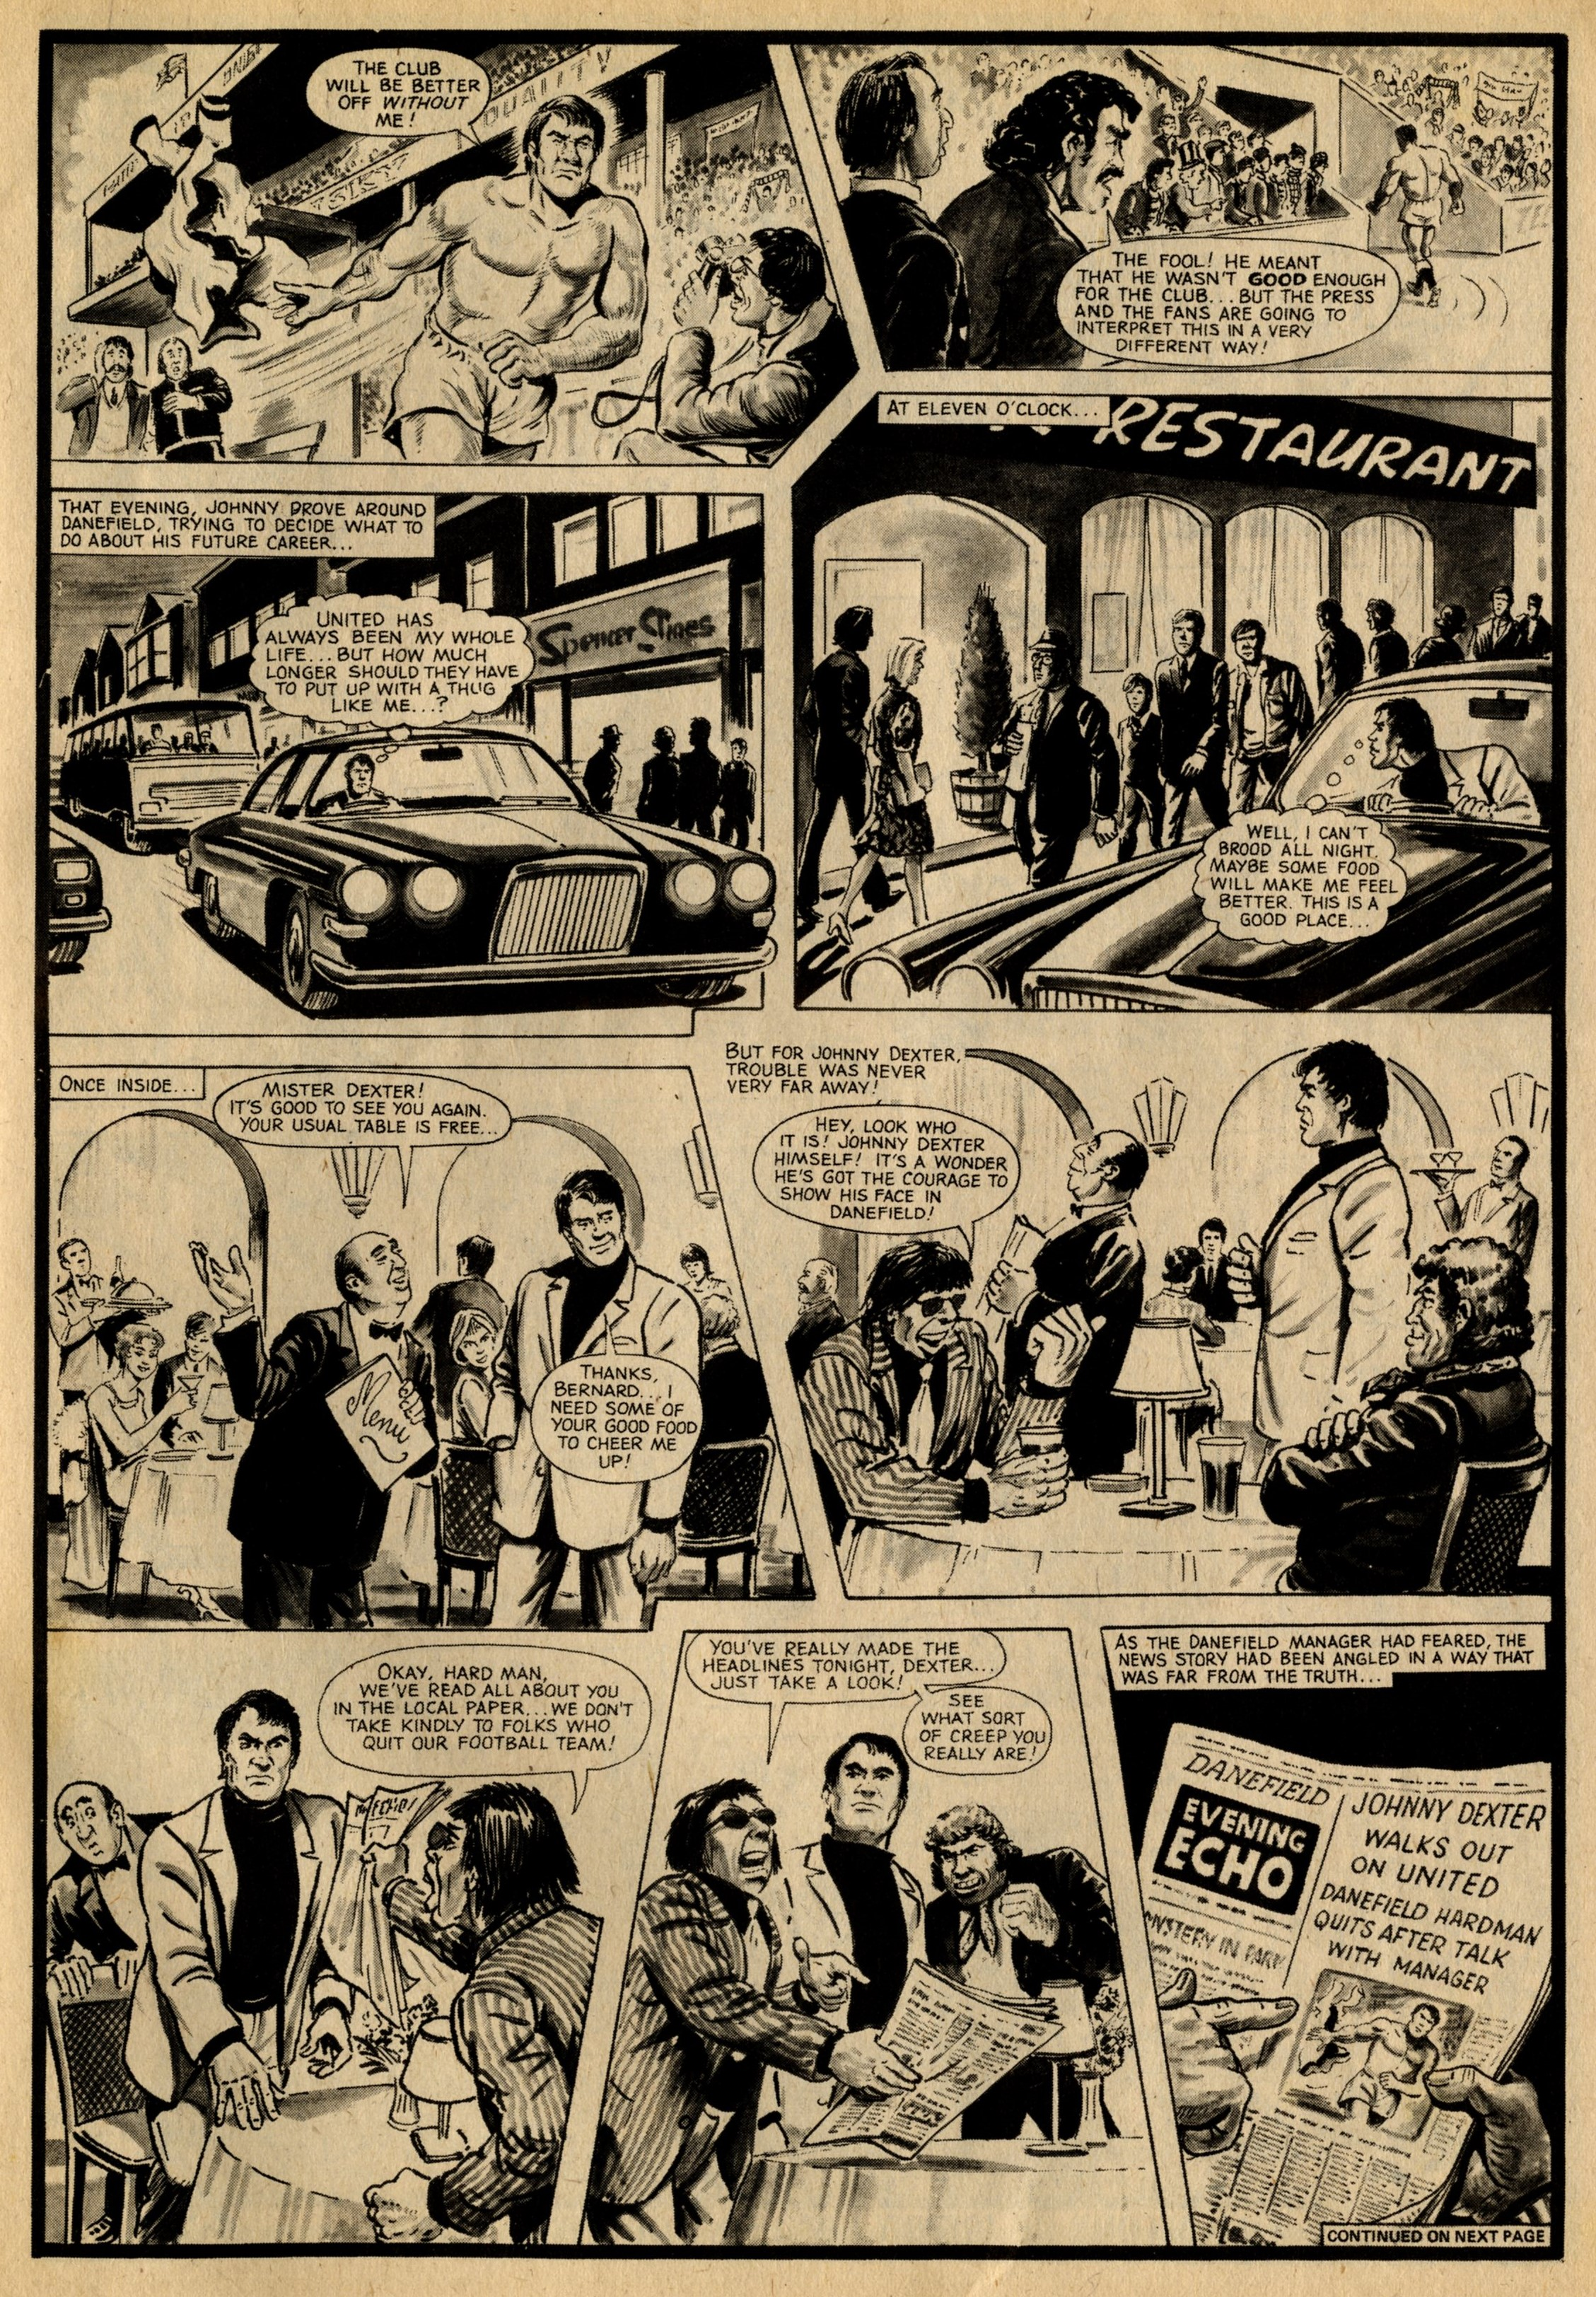 The Hard Man, episode two, Roy of the Rovers 1 October 1976: Barrie Tomlinson (writer), Doug Maxted (artist)